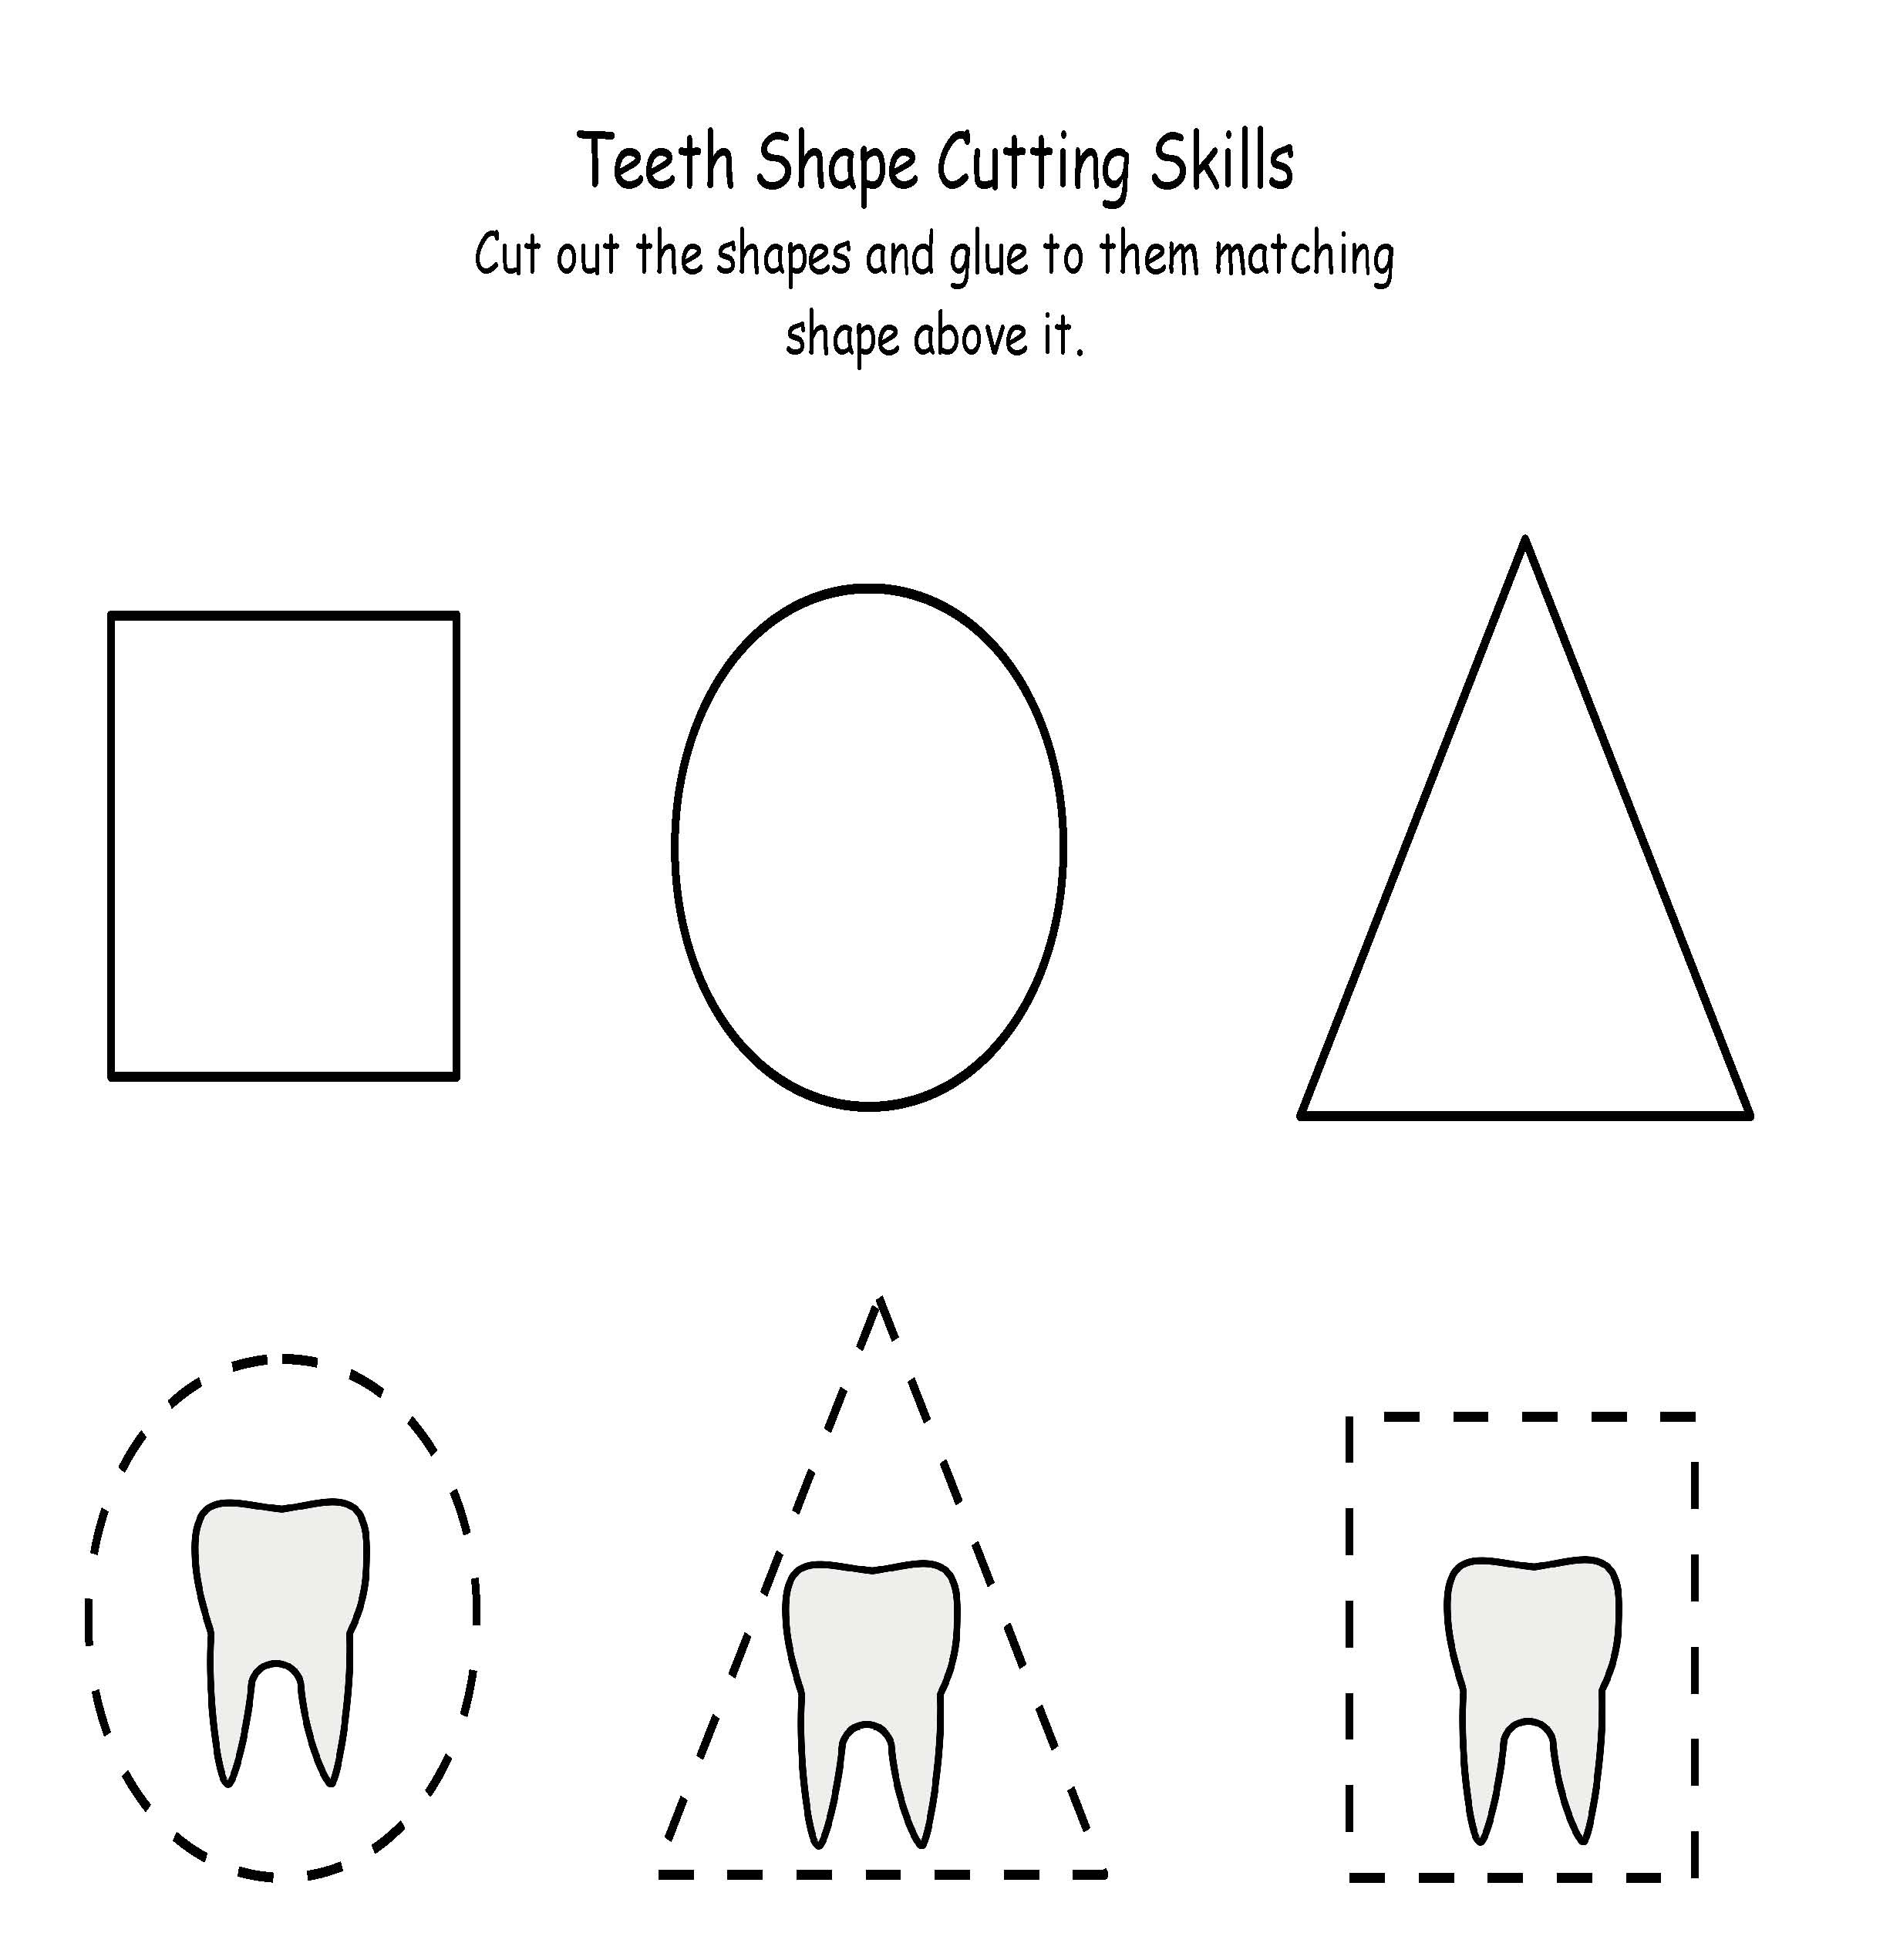 Cut And Paste Math Worksheets For Preschoolers Preschooler – Cut and Paste Math Worksheets